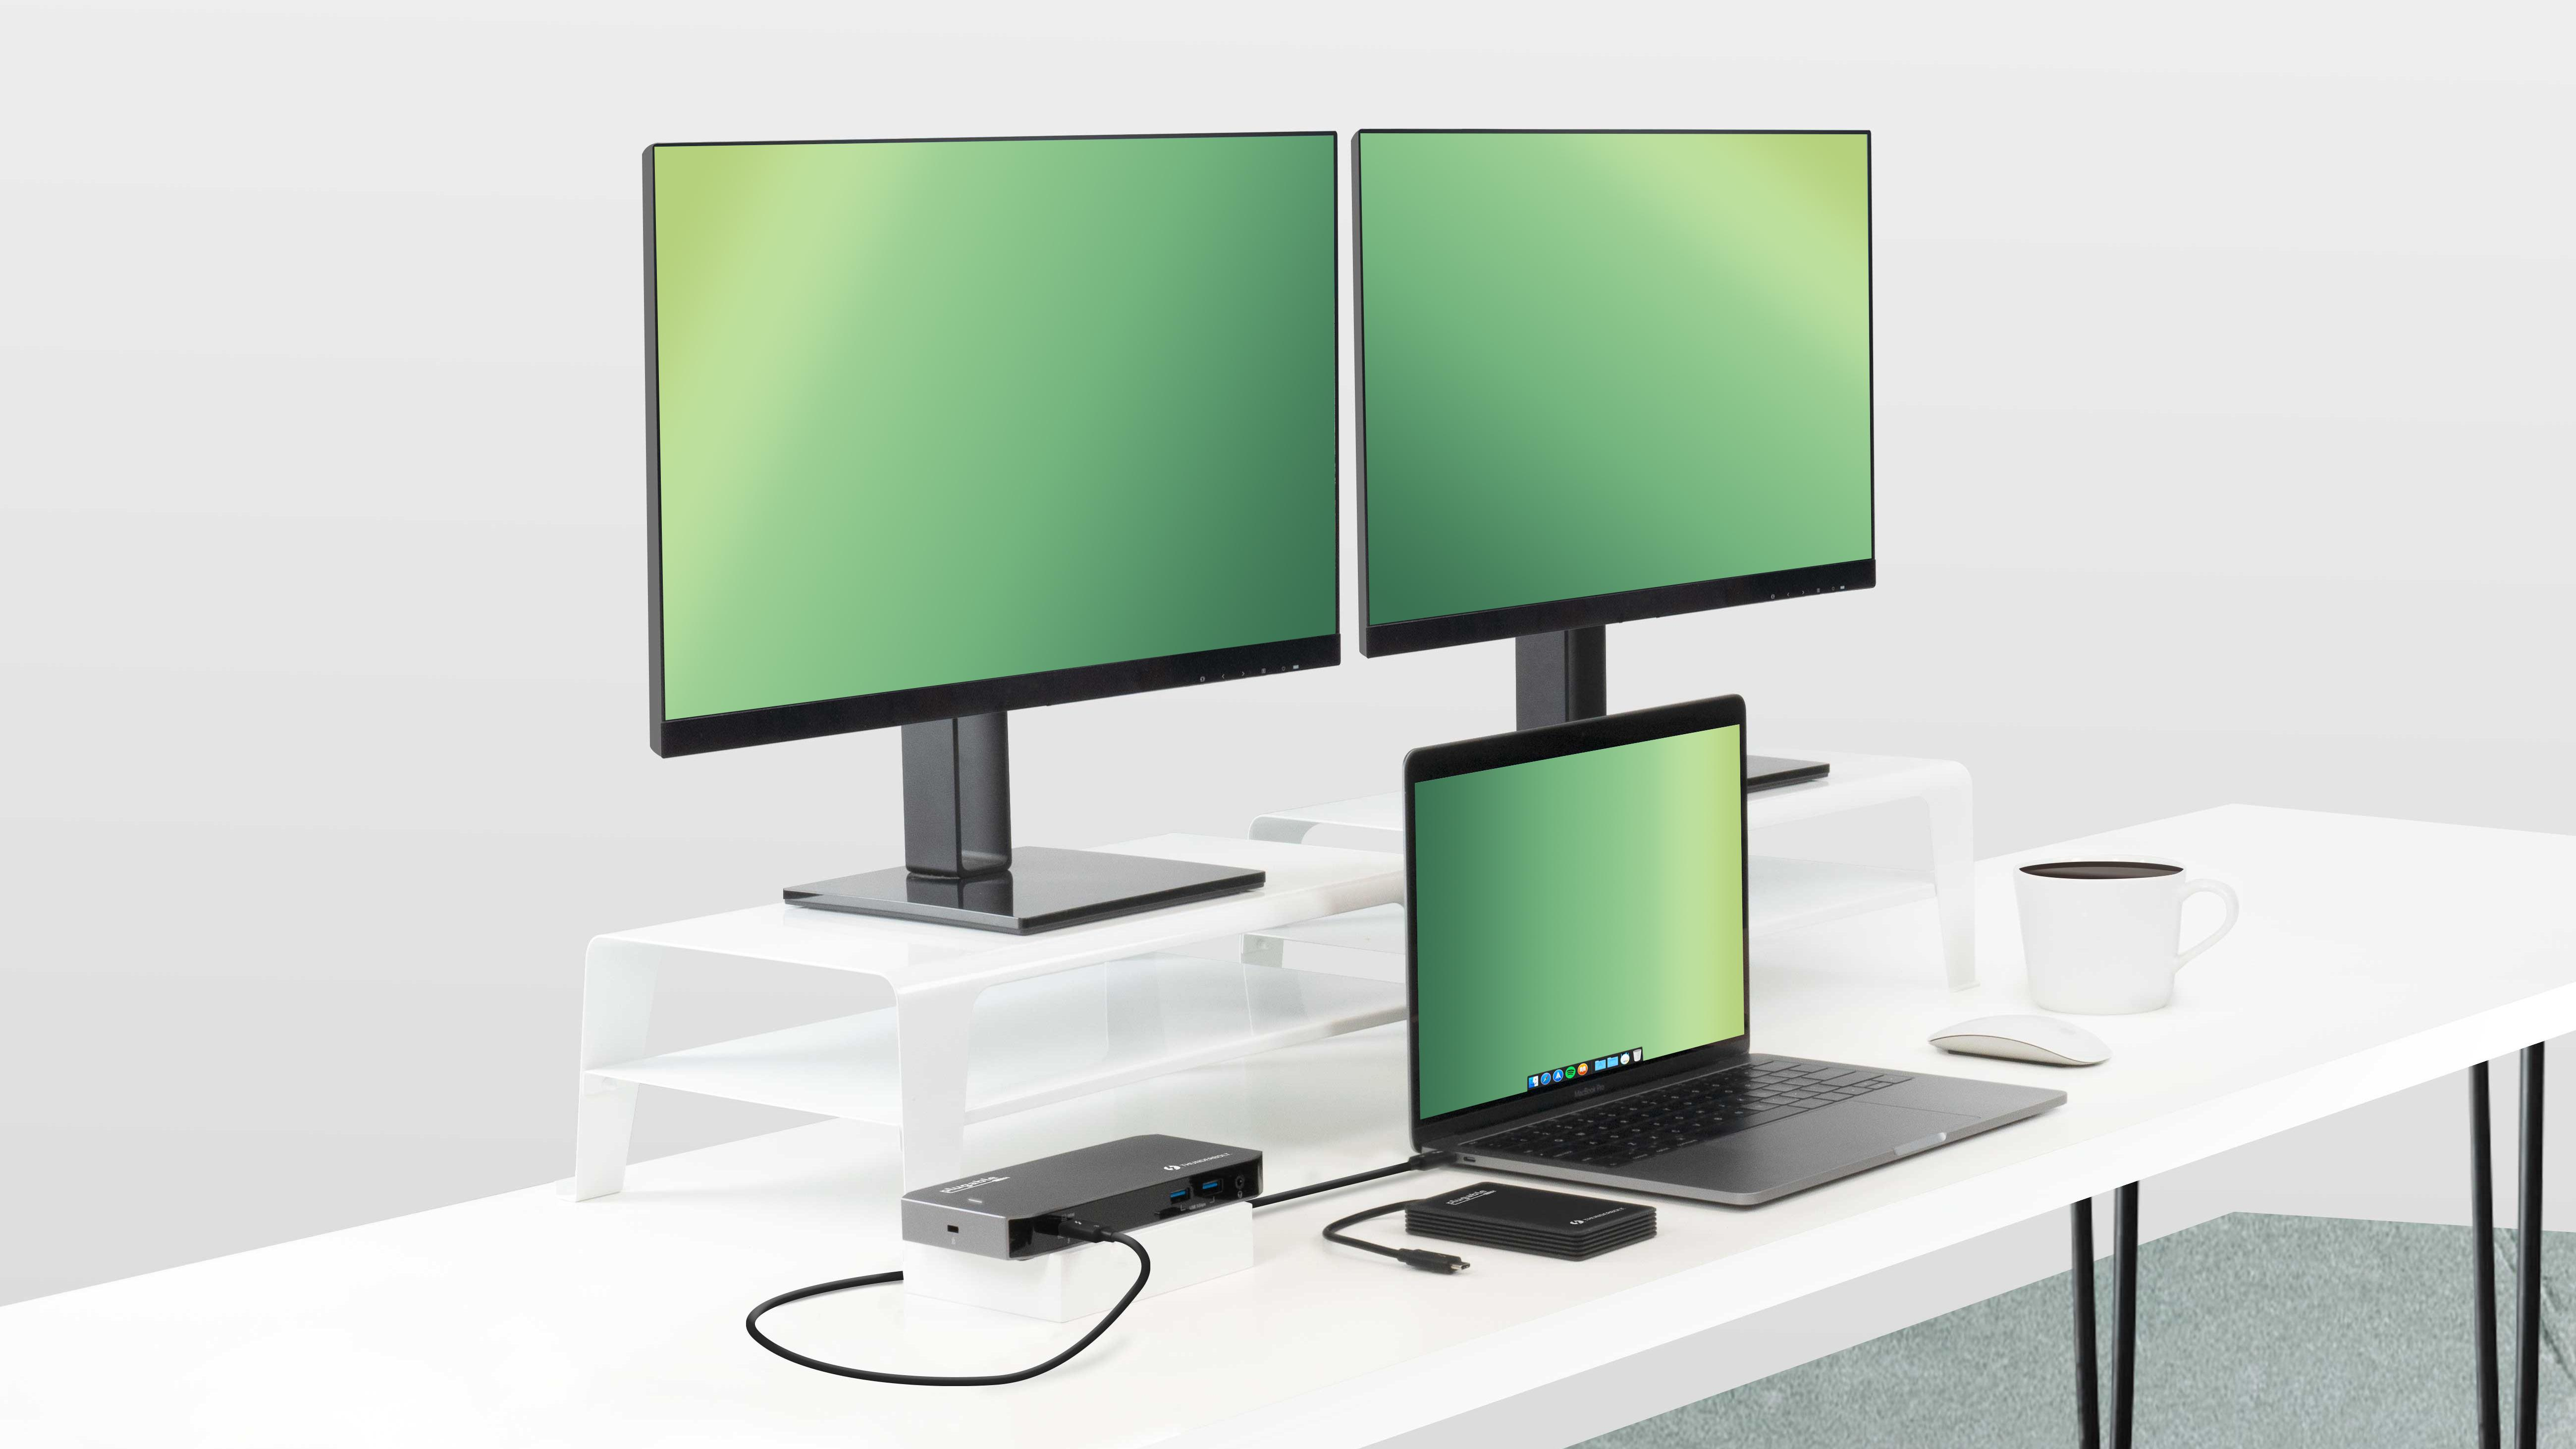 TBT3-UDC3 Docking station connected to laptop and two external monitors